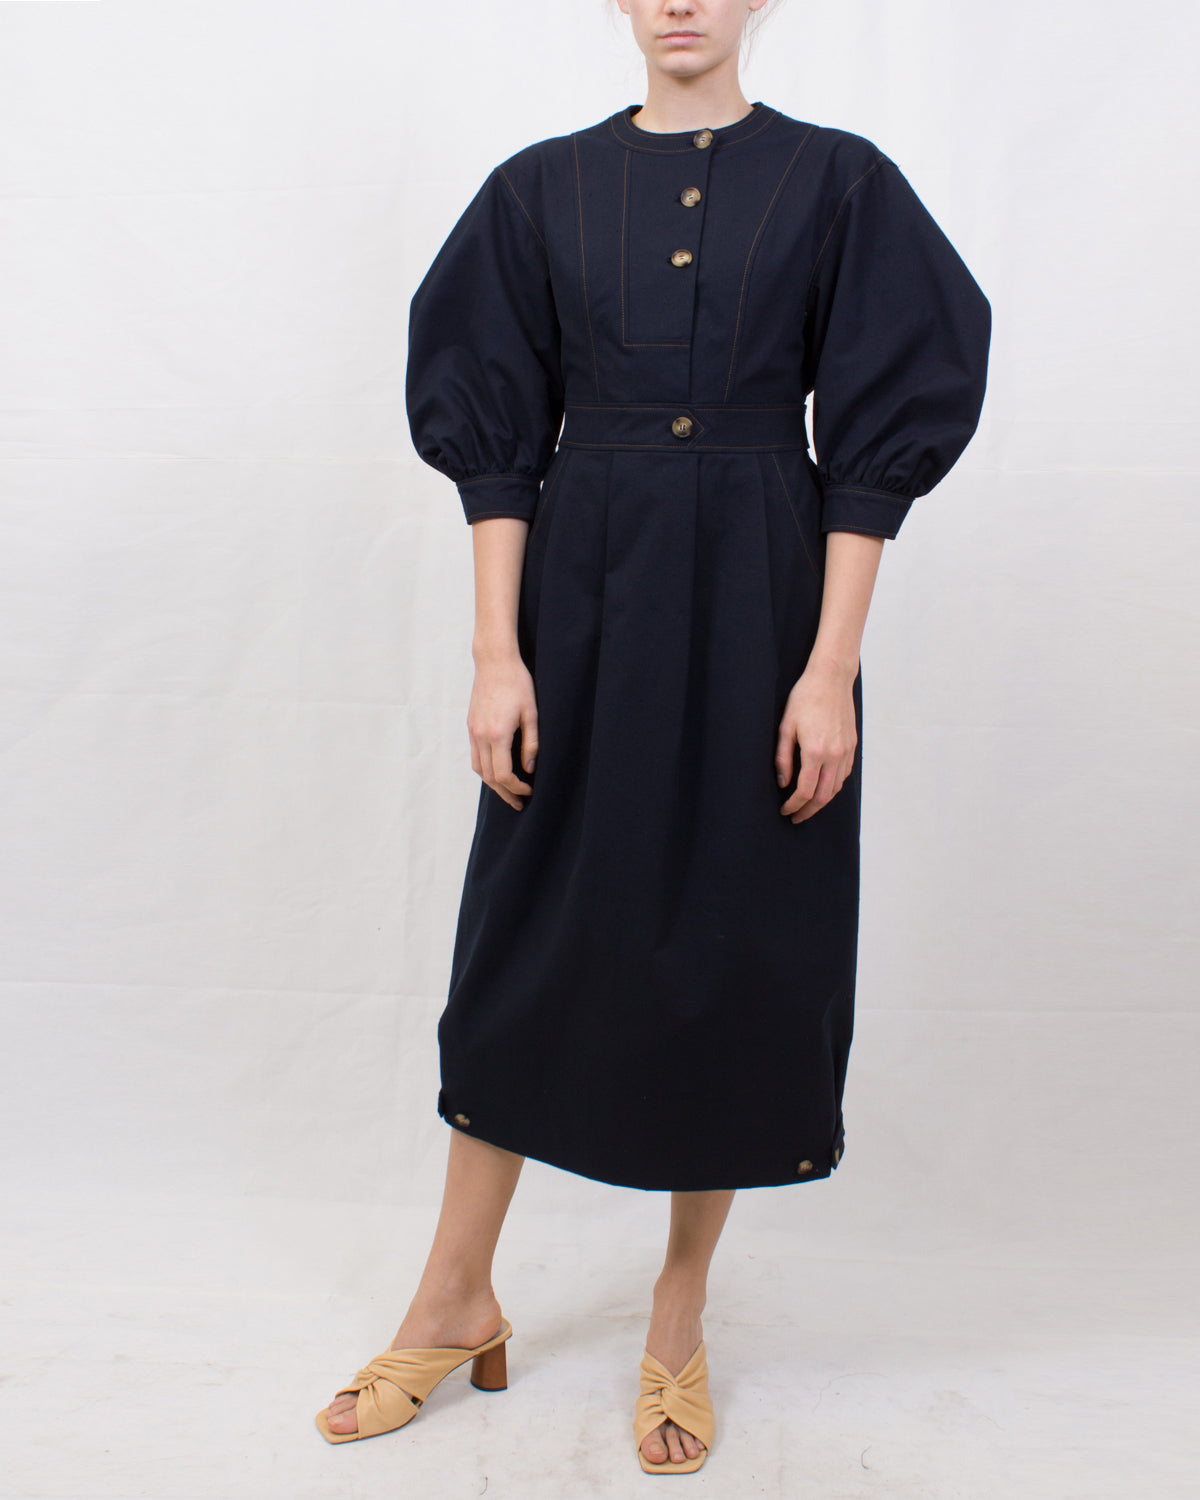 Rumi Dress Cotton Blend Black - SPECIAL PRICE